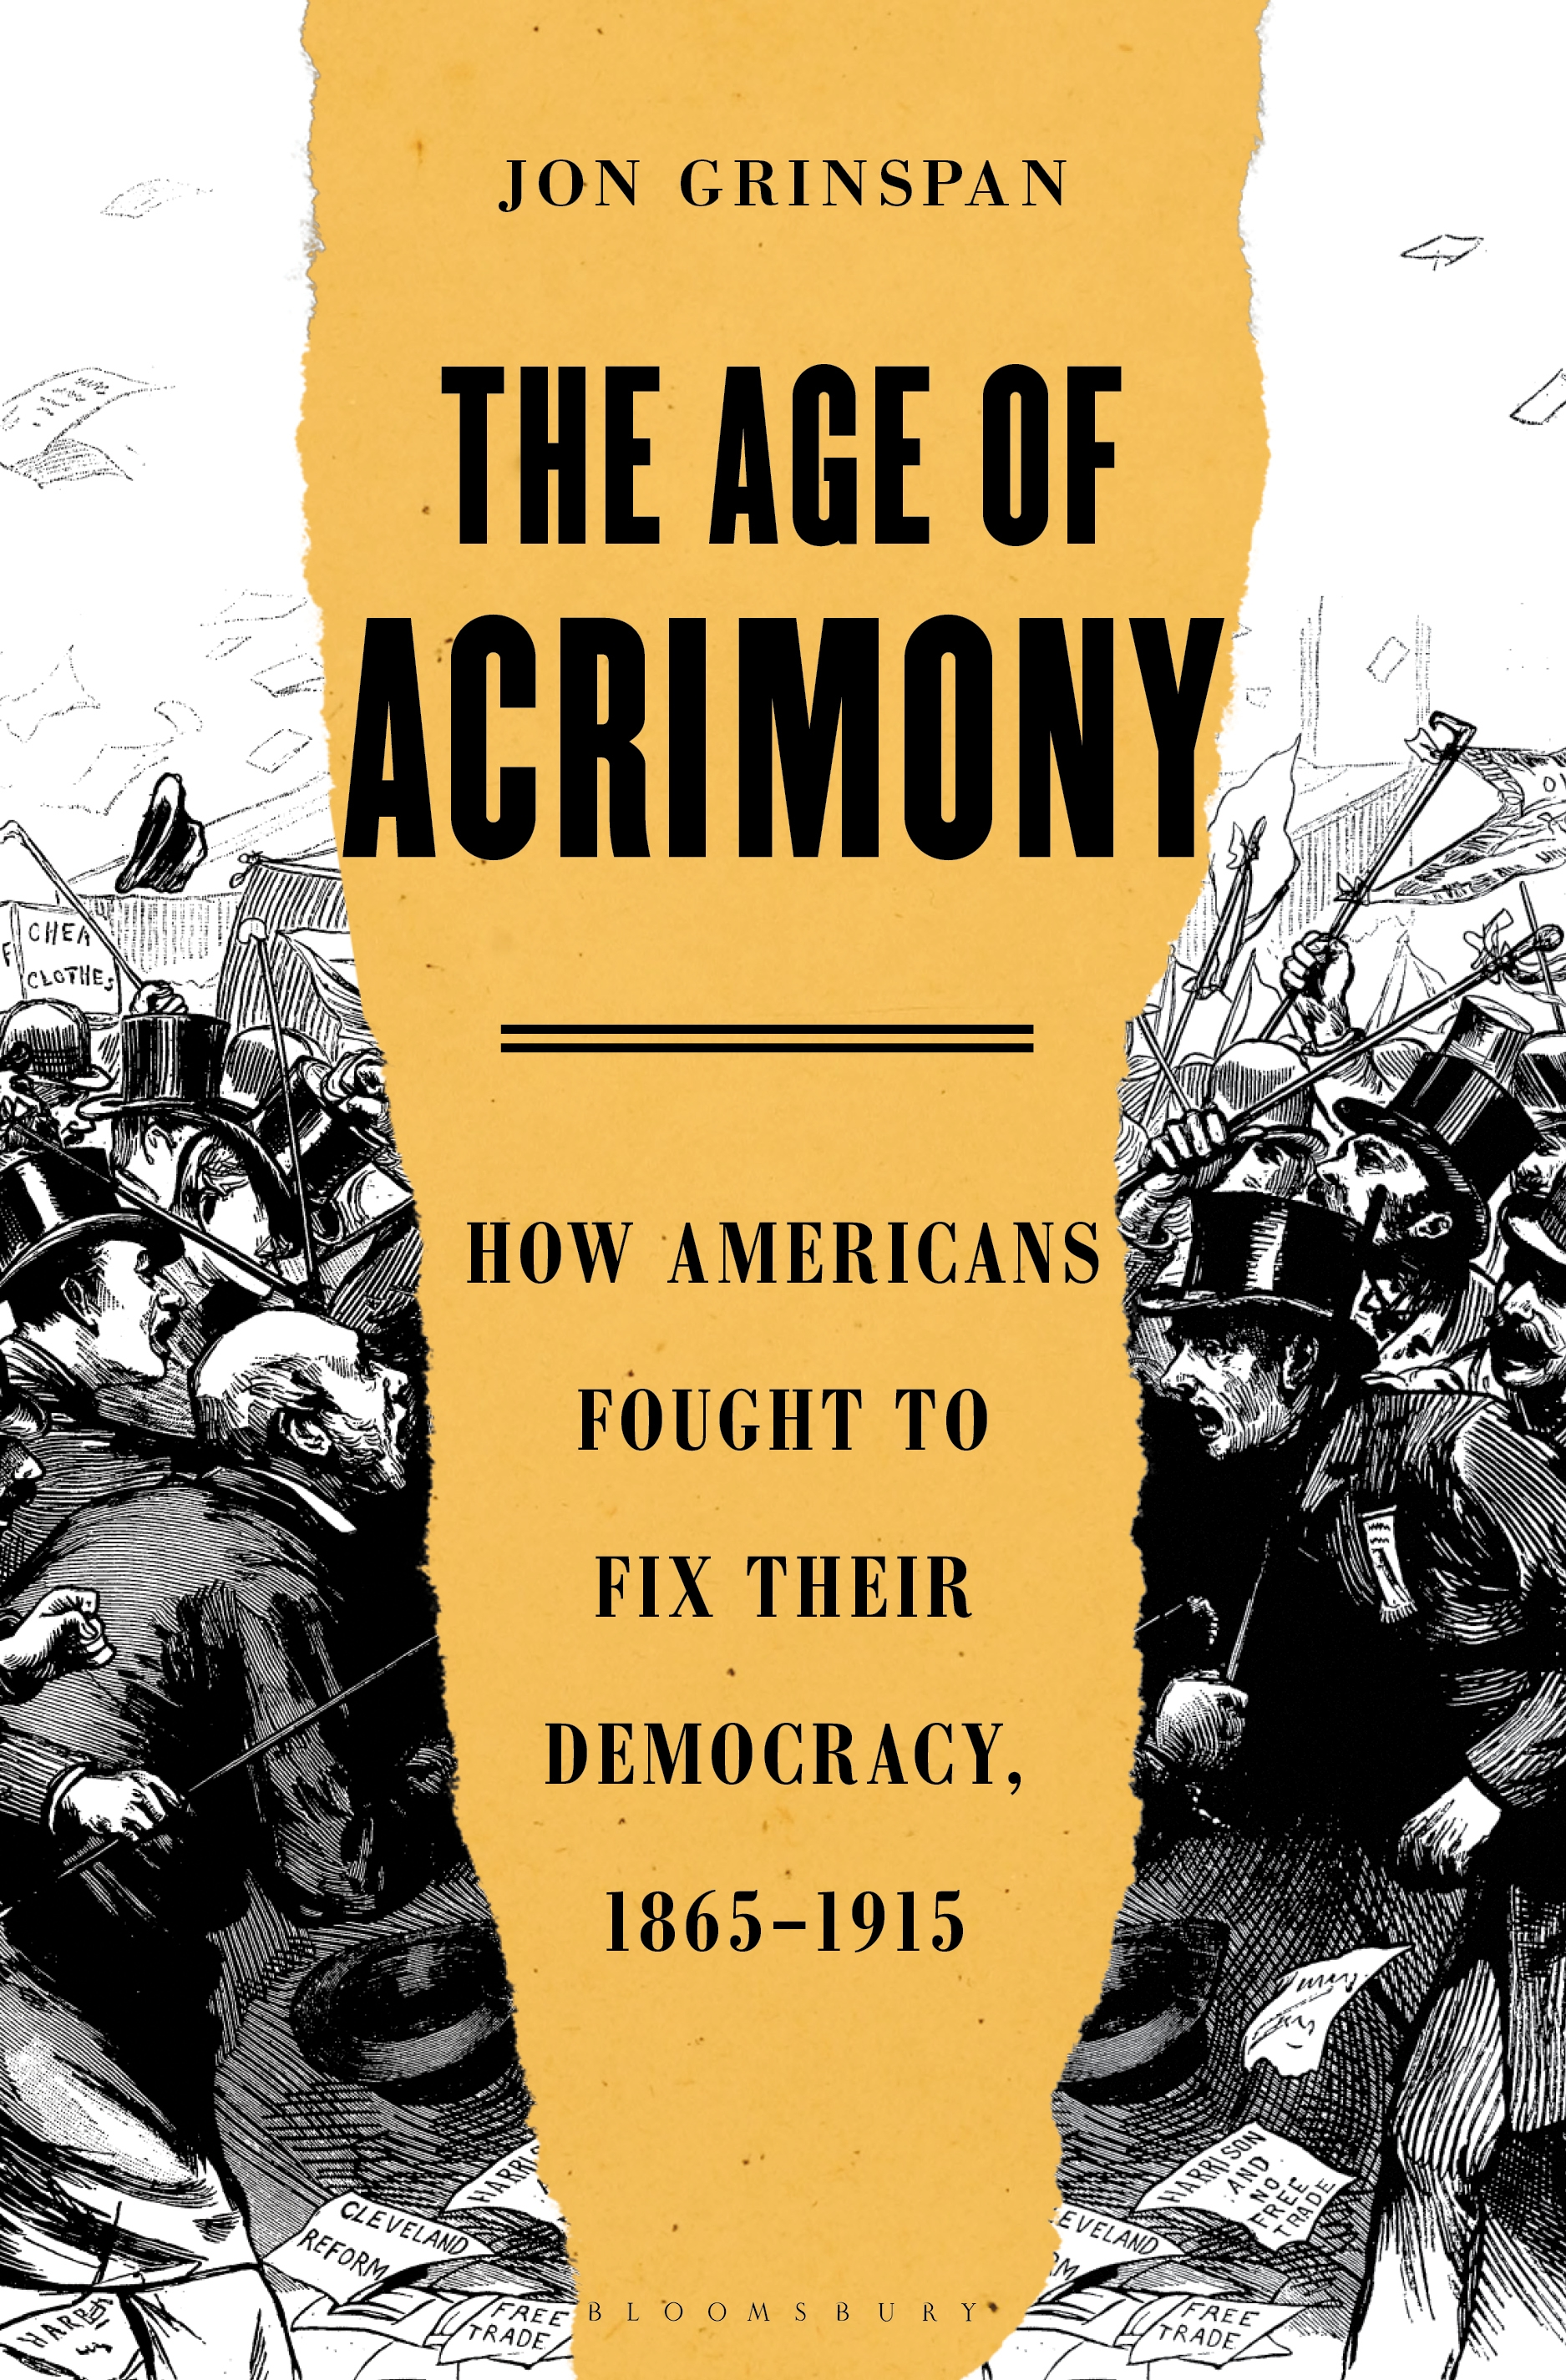 The Age of Acrimony How Americans Fought to Fix Their Democracy, 1865-1915